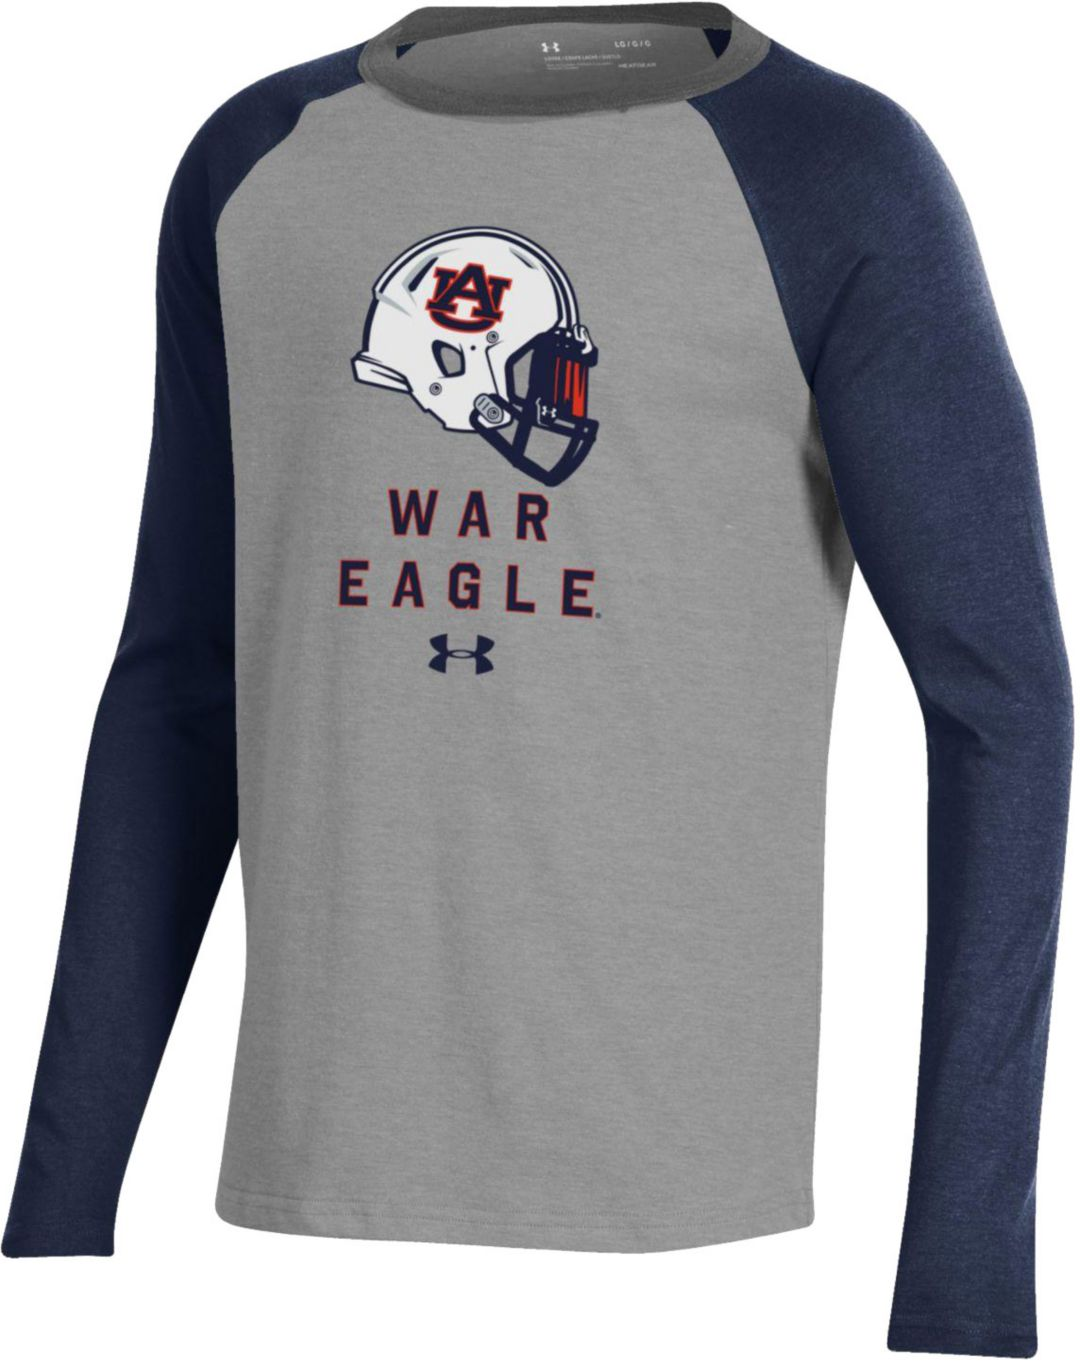 reputable site e6583 94d83 Under Armour Youth Auburn Tigers Grey/Blue Performance Cotton Football  T-Shirt